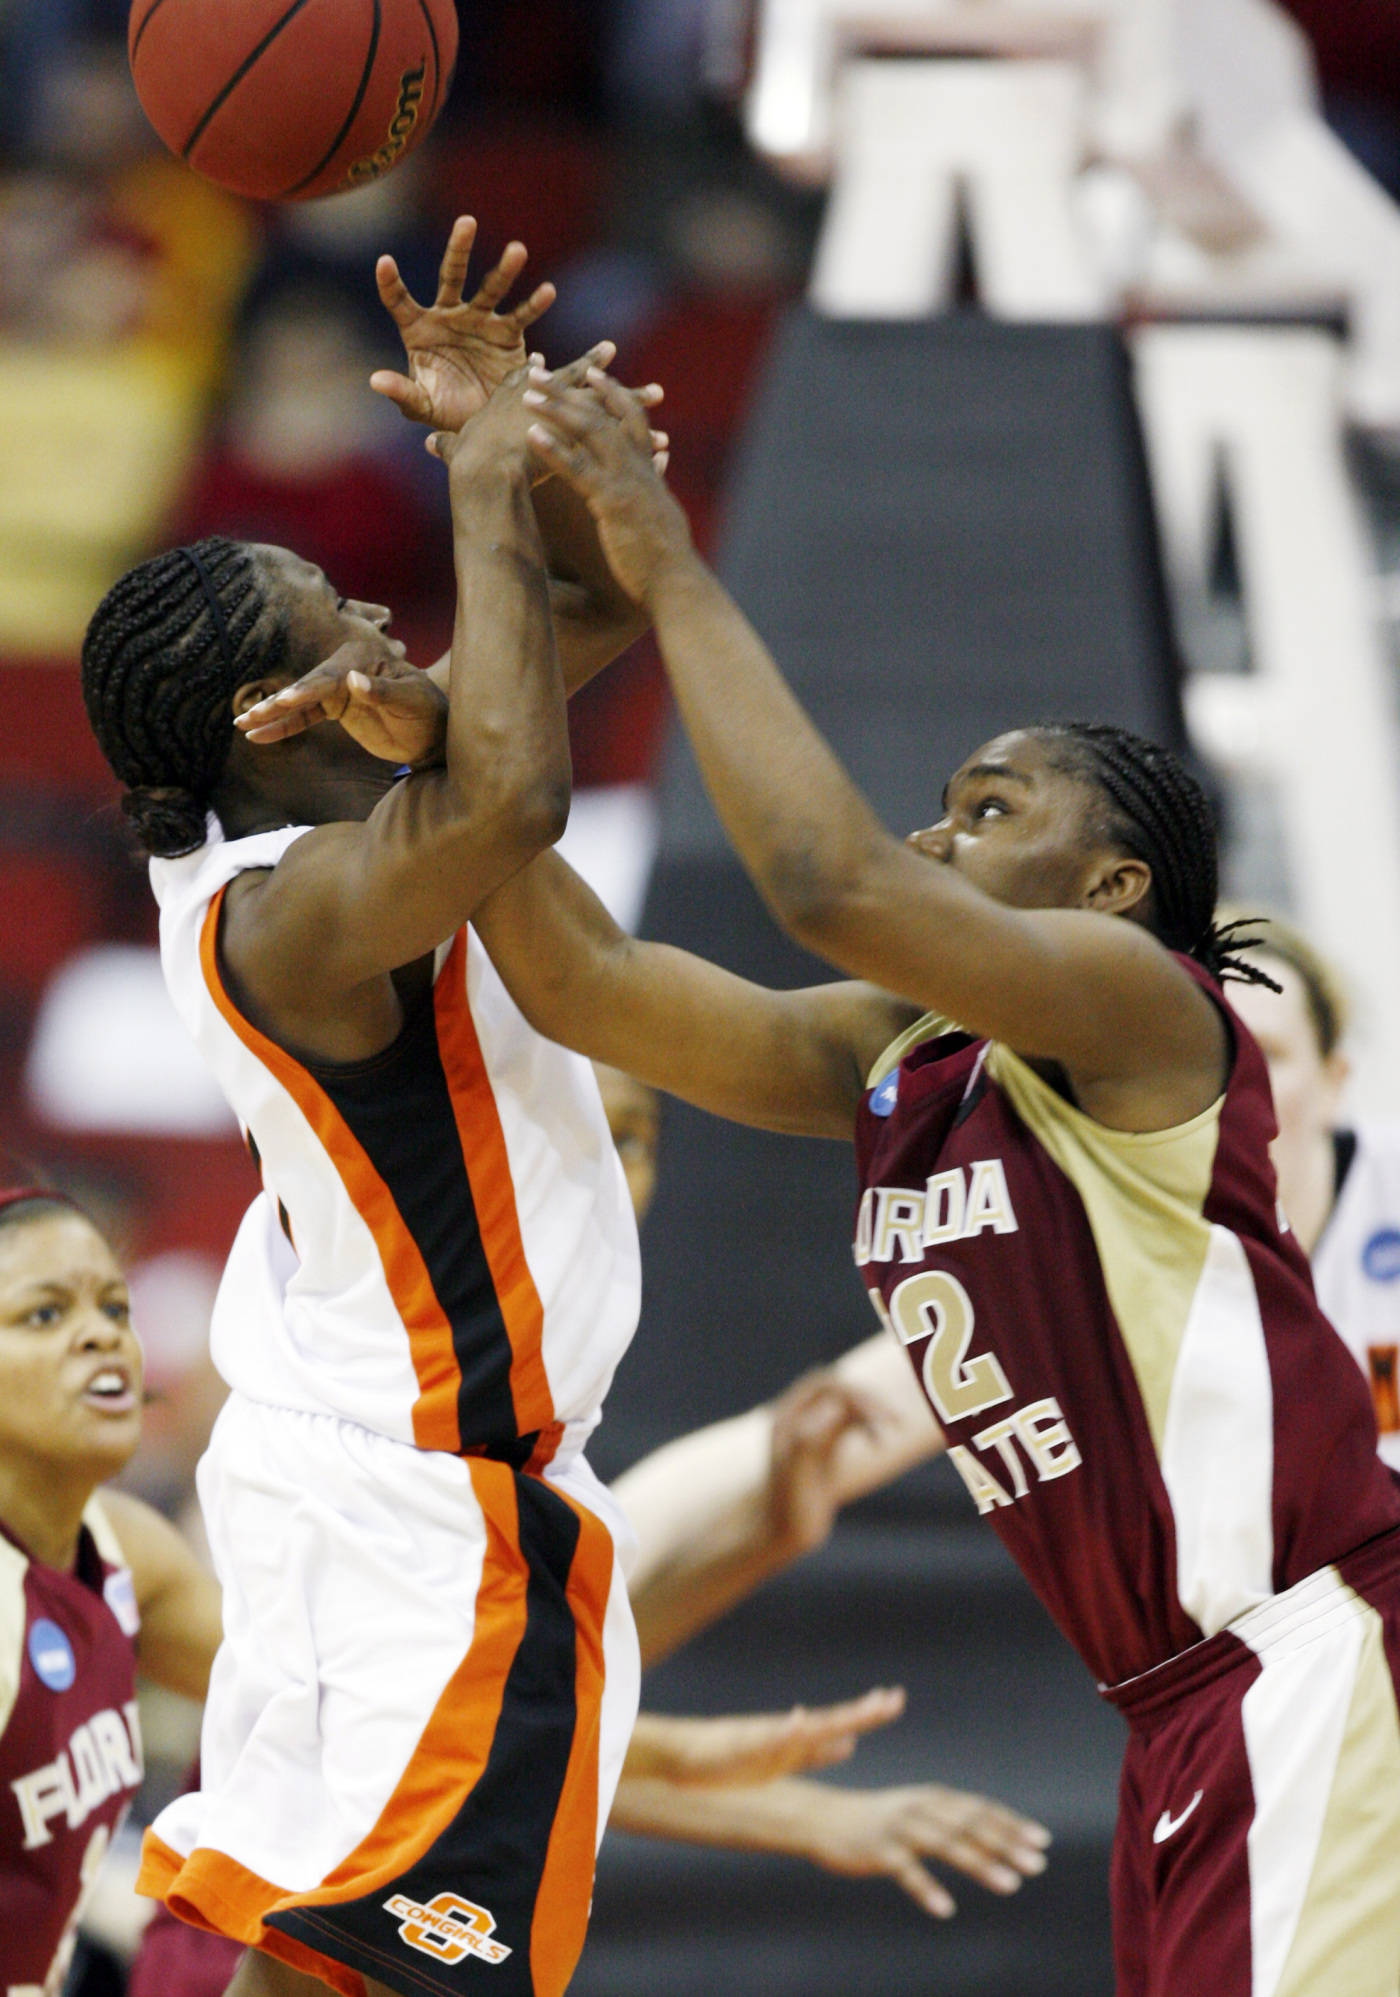 Oklahoma State's Andrea Riley, left, is fouled by Florida State's Shante Williams at the end of an NCAA women's basketball tournament second round game, Monday, March 24, 2008, in Des Moines, Iowa. Riley made a free throw with under one second remaining as Oklahoma State won 73-72 in overtime. (AP Photo/Charlie Neibergall)